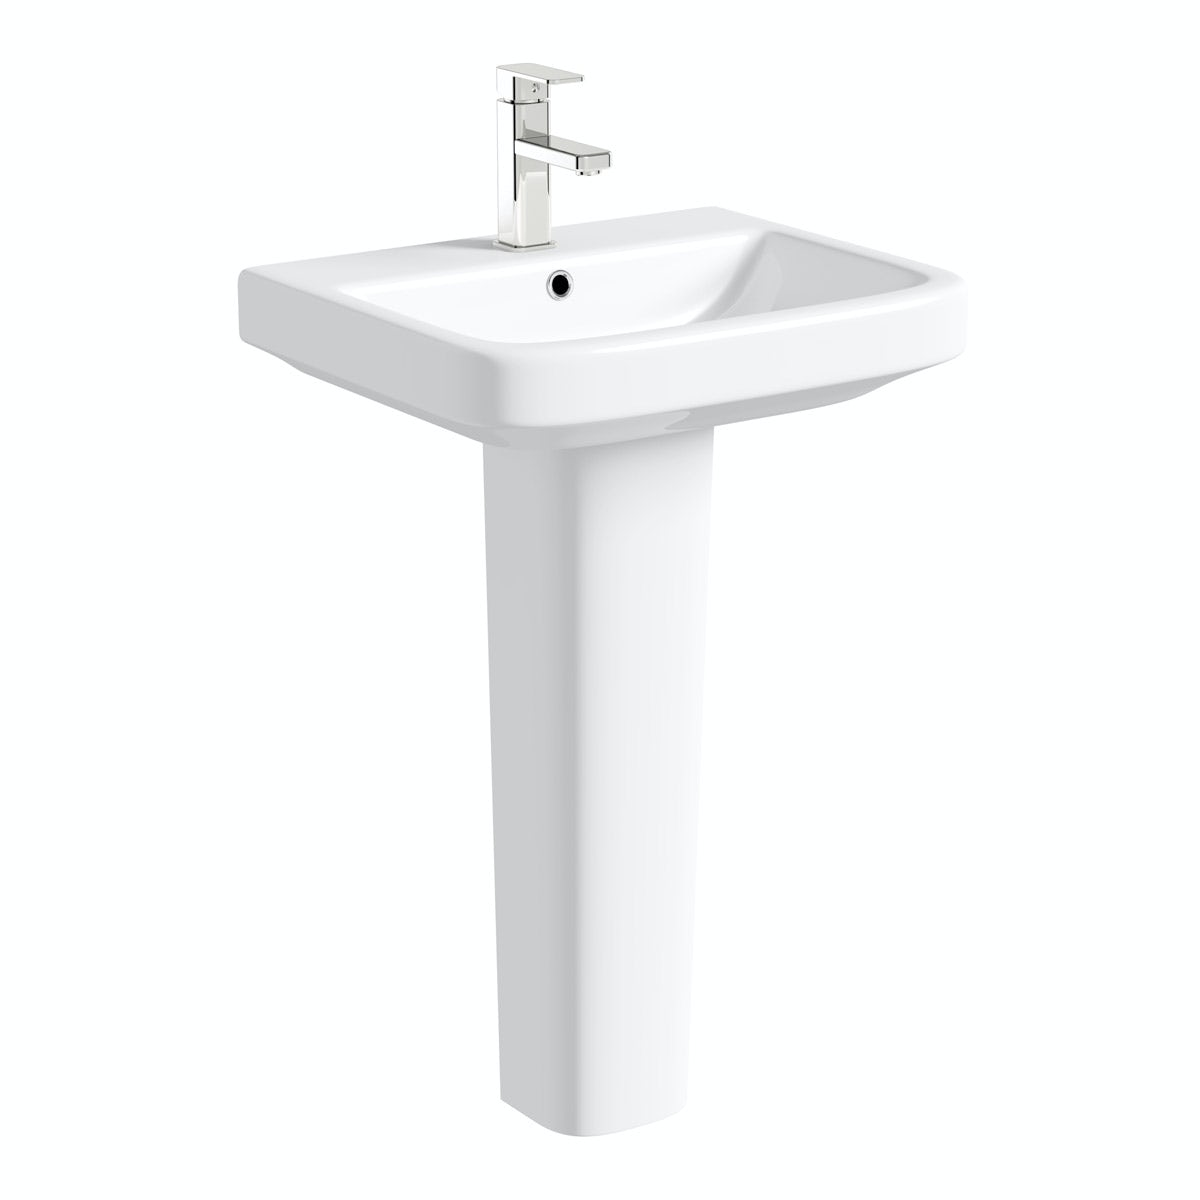 Mode Carter full pedestal basin 550mm with waste